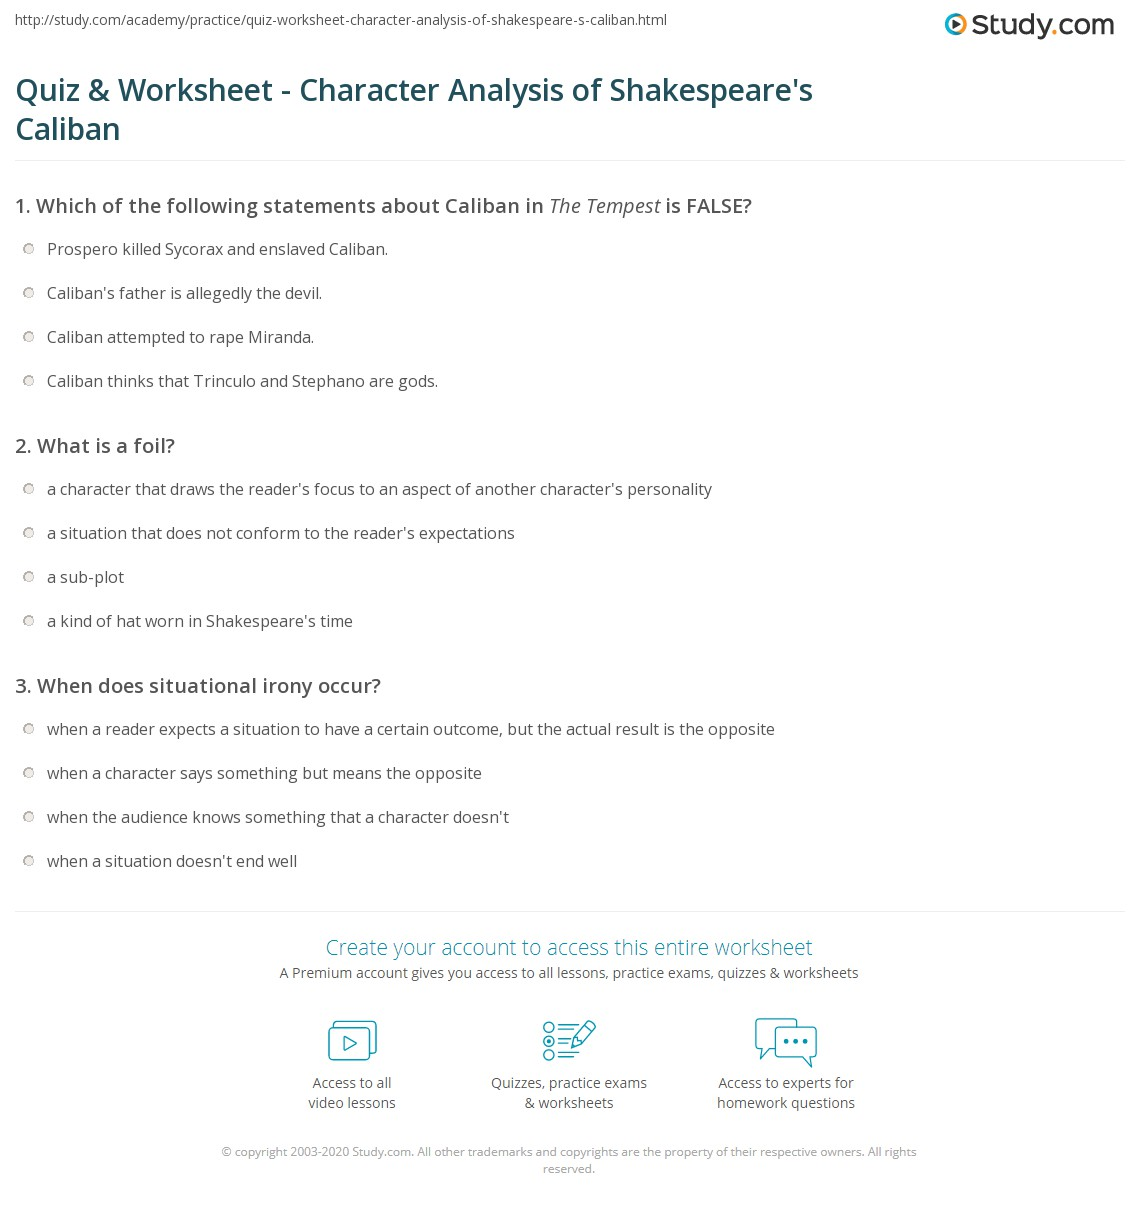 quiz worksheet character analysis of shakespeare s caliban print shakespeare s caliban character analysis overview worksheet